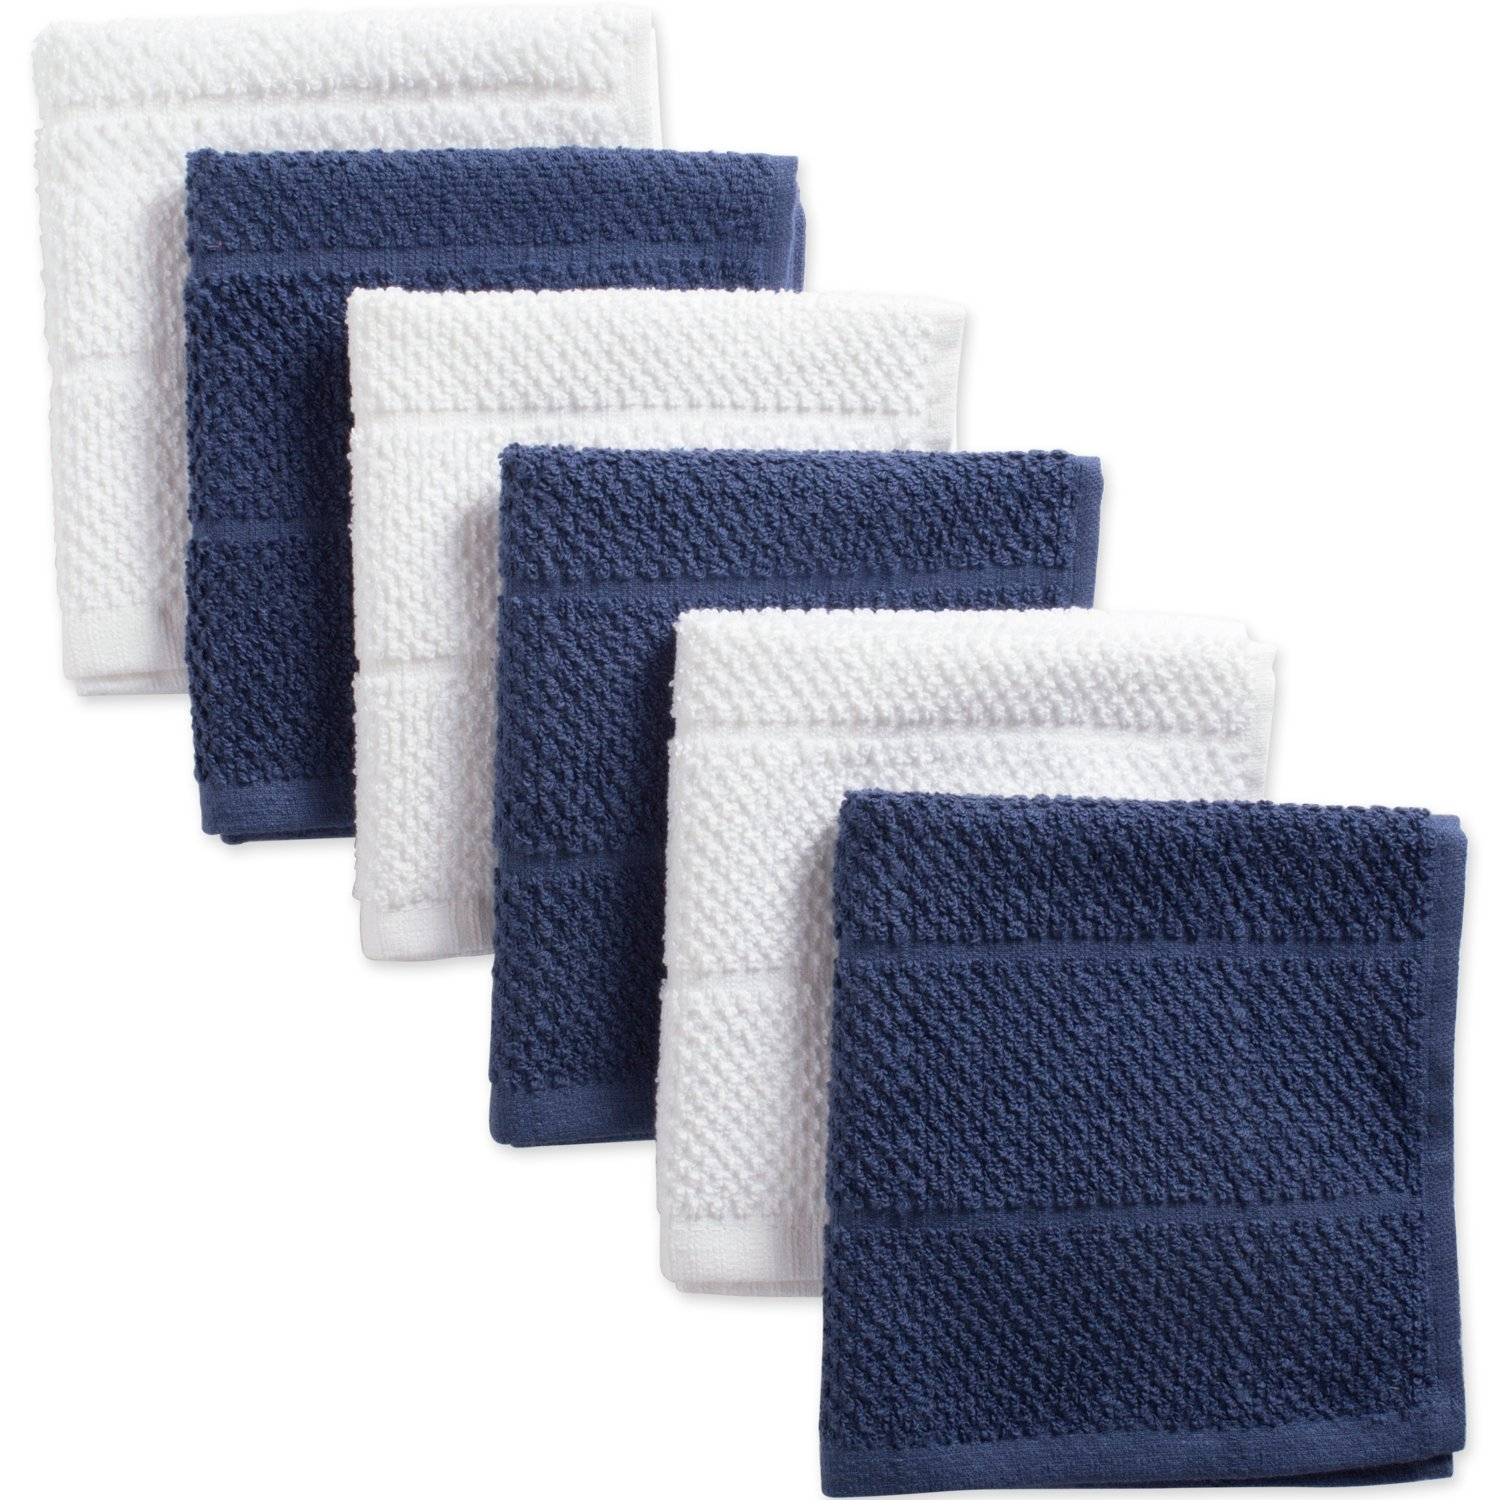 Ultra-Absorbent Cleaning Drying Kitchen Towels-Barn Red//White 12 x 12 Set of 6 CAMZ38315 DII Cotton Luxury Chef Terry Dish Cloths 12 x 12 Set of 6